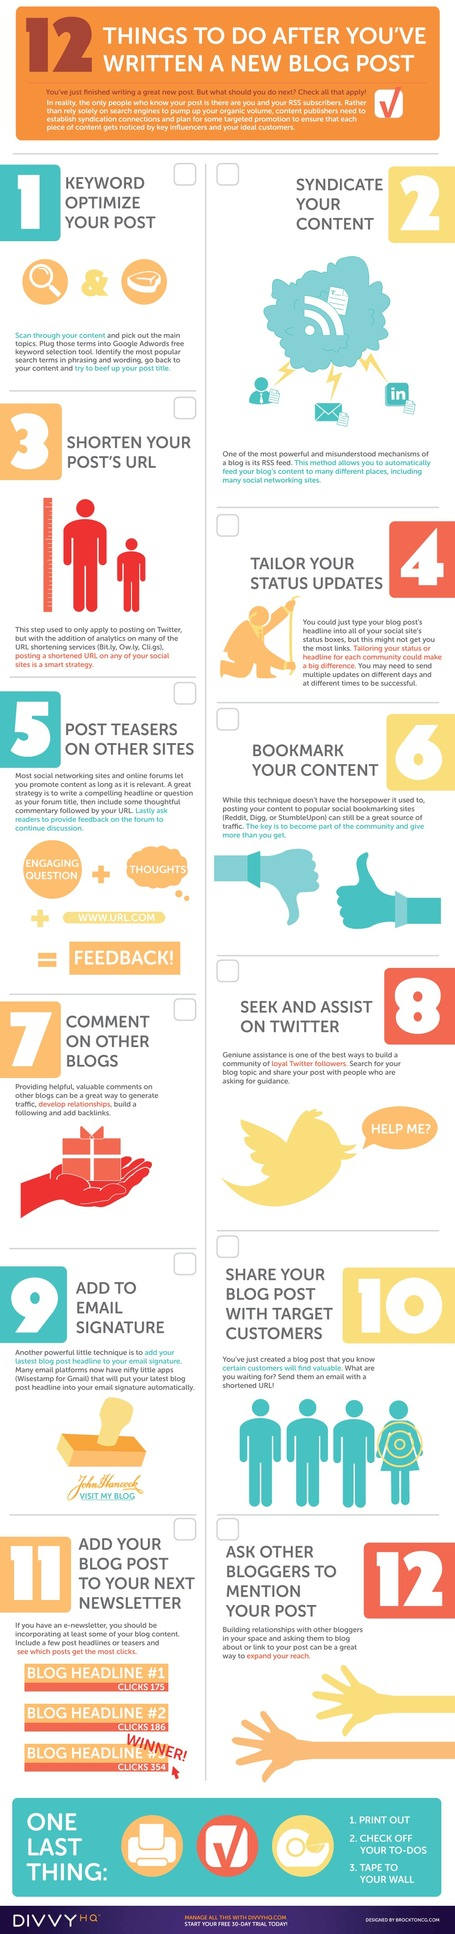 12 Things To Do After You've Published a New Blog Post | Infographic | Marketing Revolution | Scoop.it